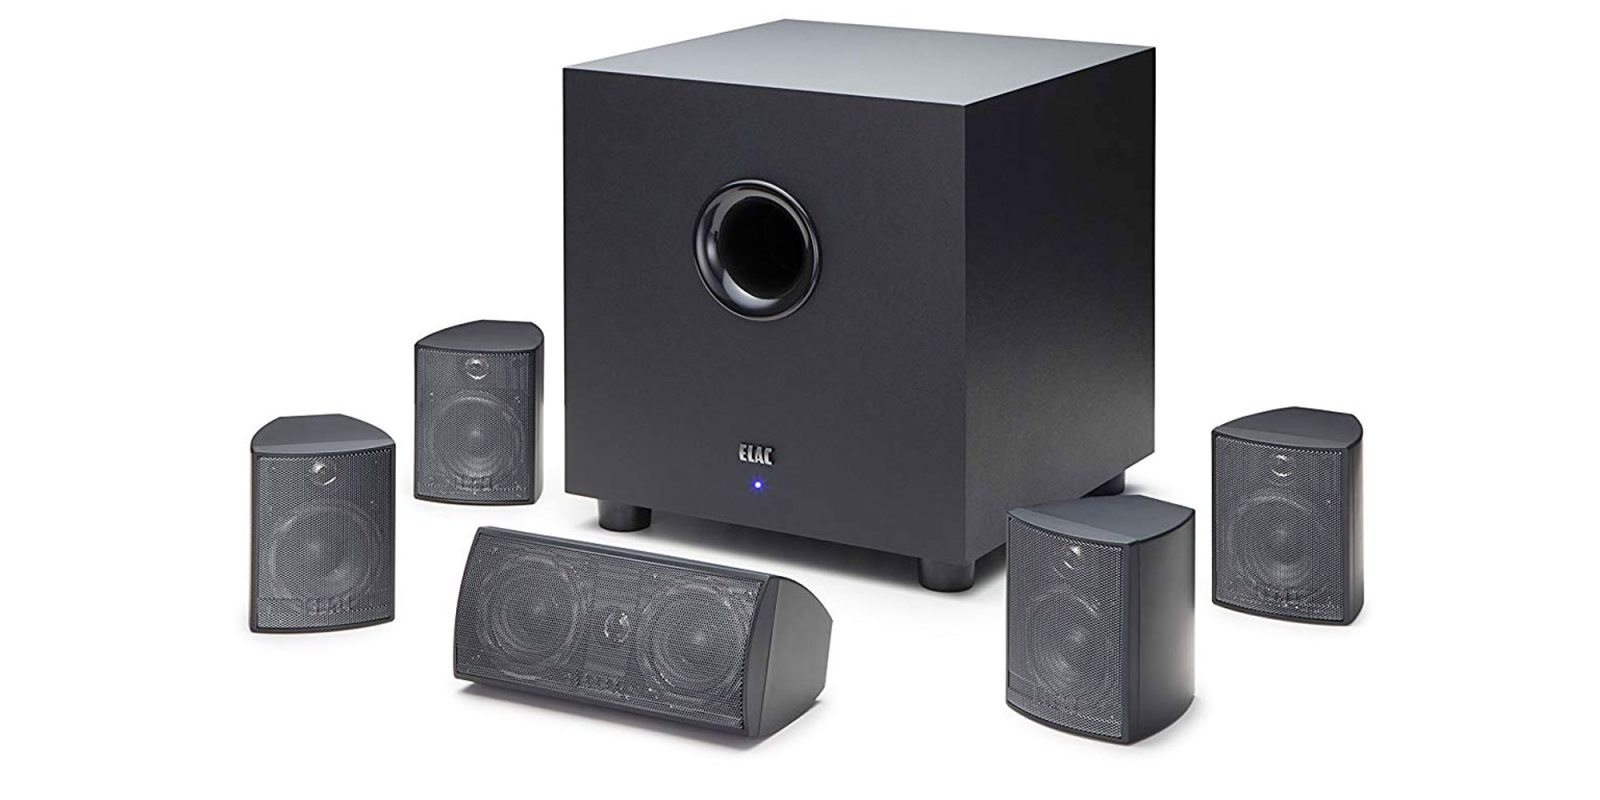 Save over $260 on ELAC's Cinema 5 home theater speaker system, now $139